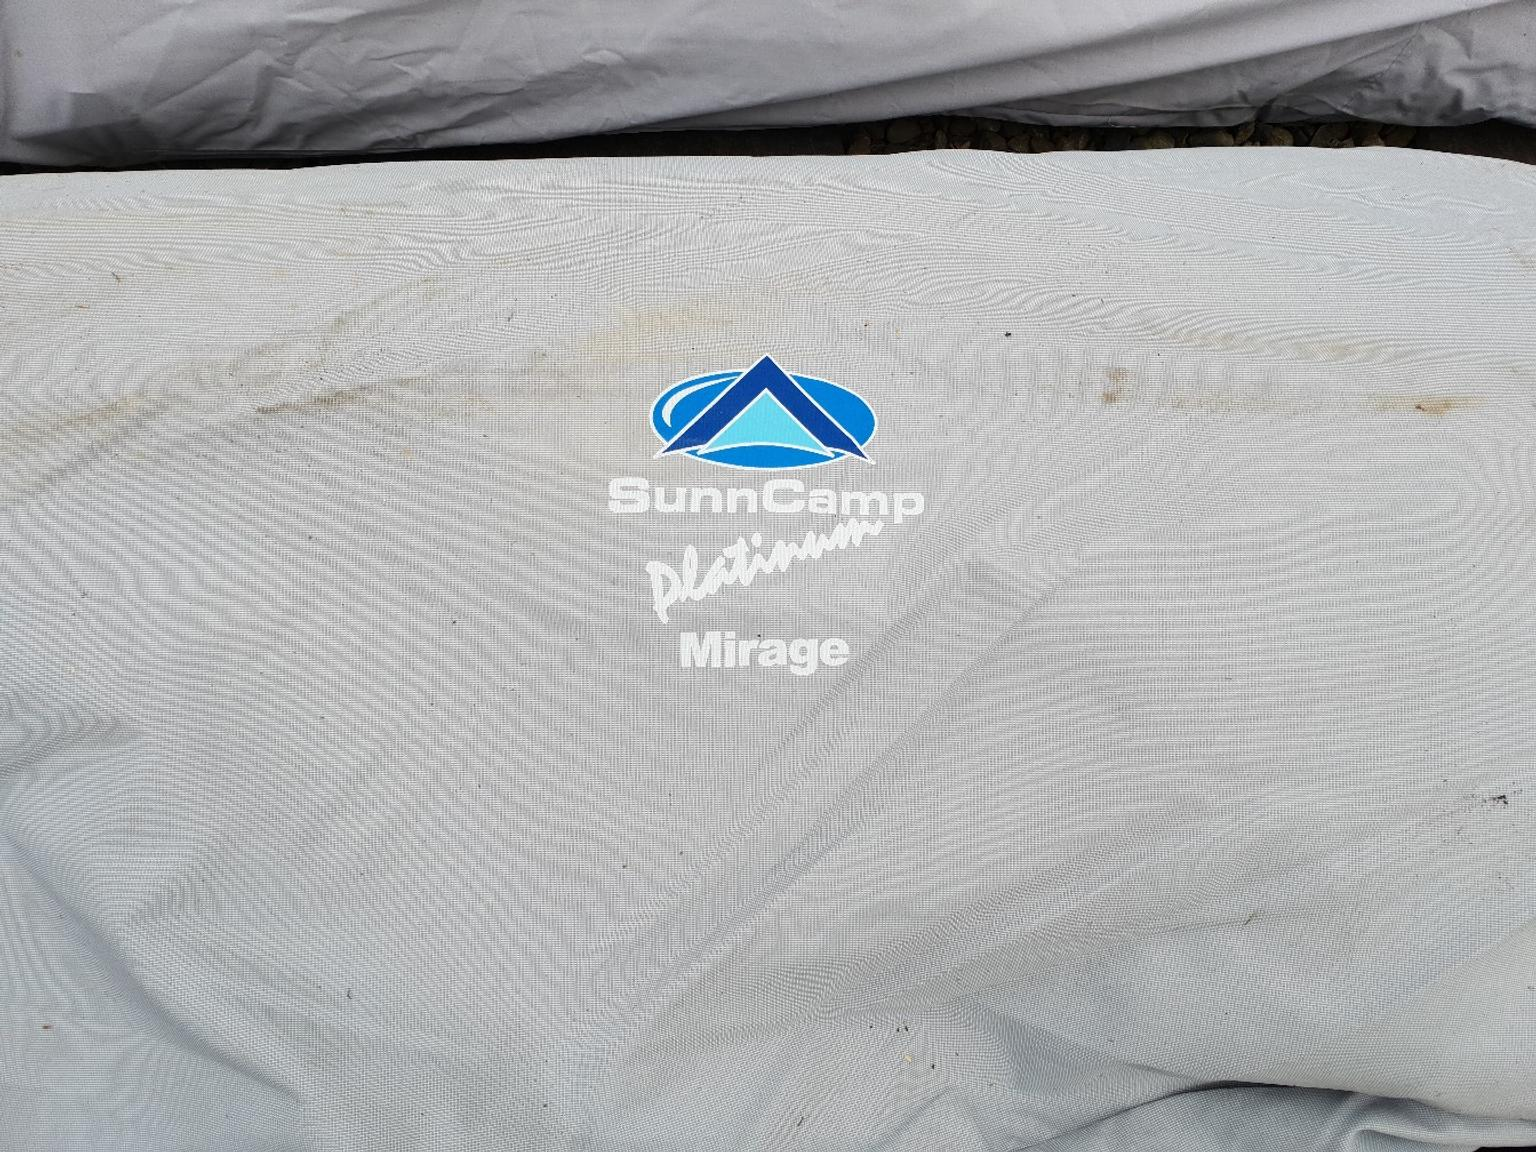 Sunncamp Mirage Awning Size 9 Green 850cm - 8 in Mancot ...